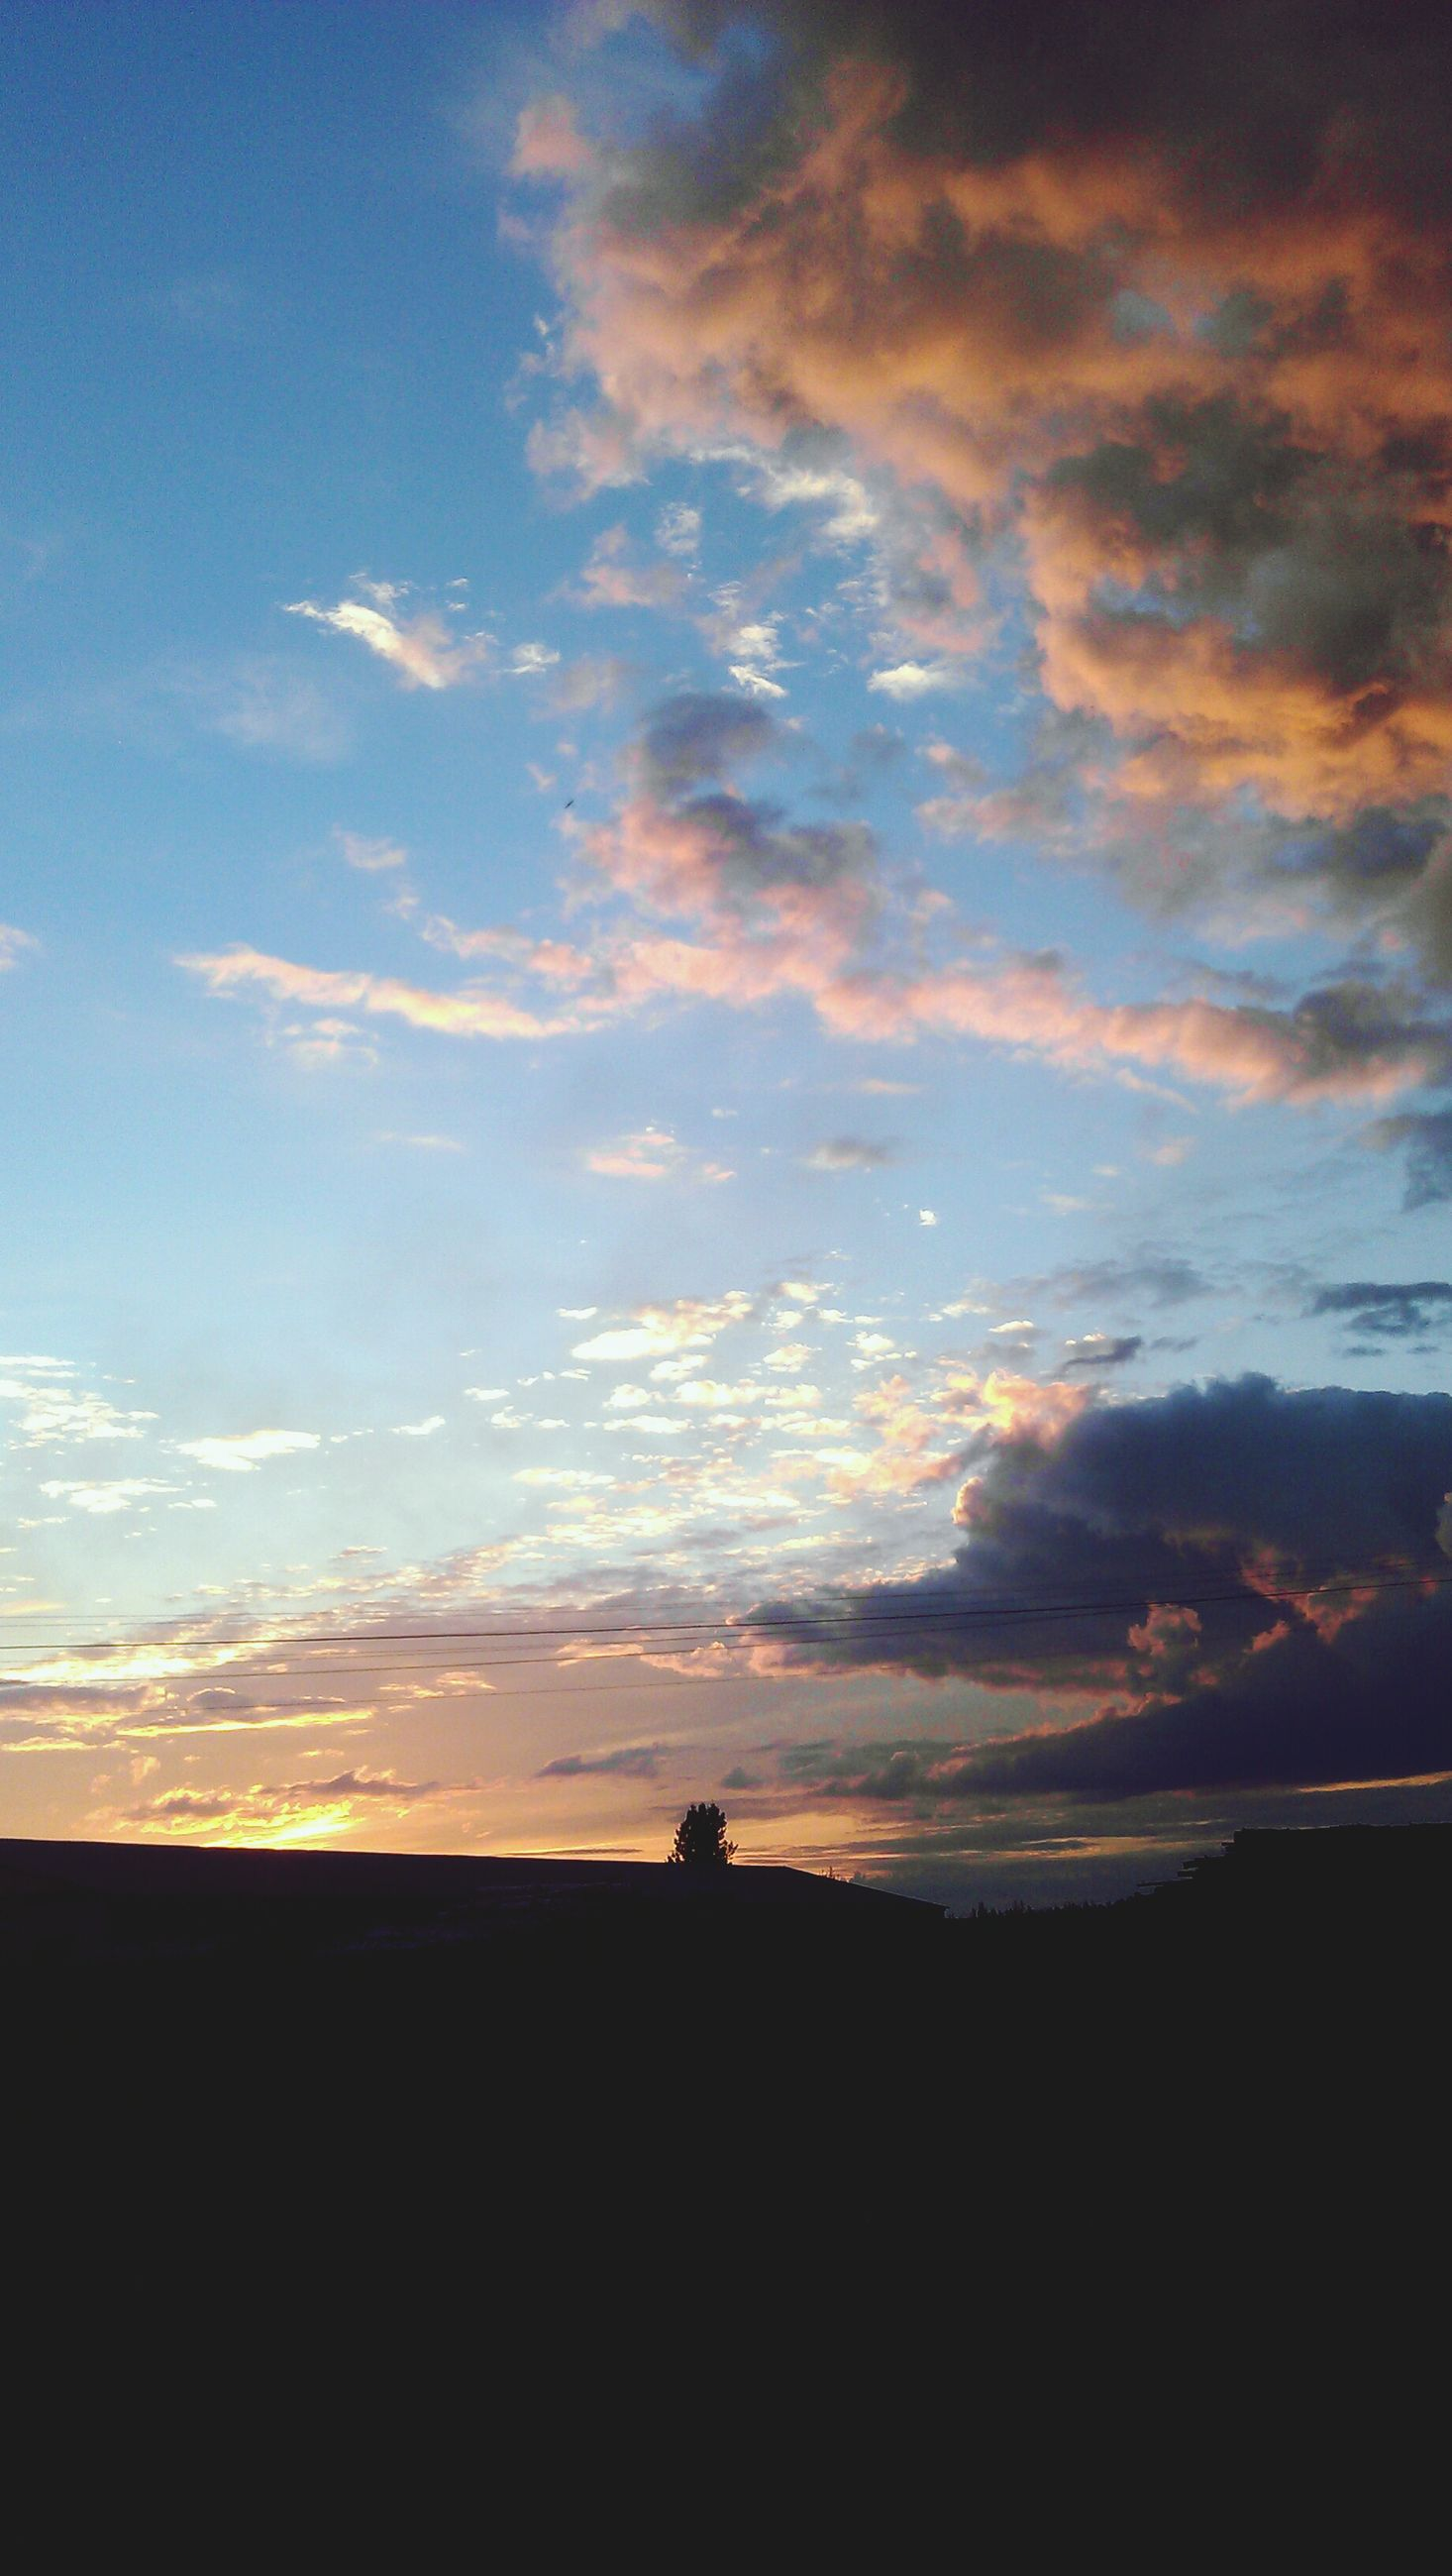 silhouette, sunset, sky, tranquil scene, scenics, tranquility, beauty in nature, cloud - sky, landscape, cloud, nature, idyllic, outline, dark, dusk, horizon over land, dramatic sky, cloudy, outdoors, orange color